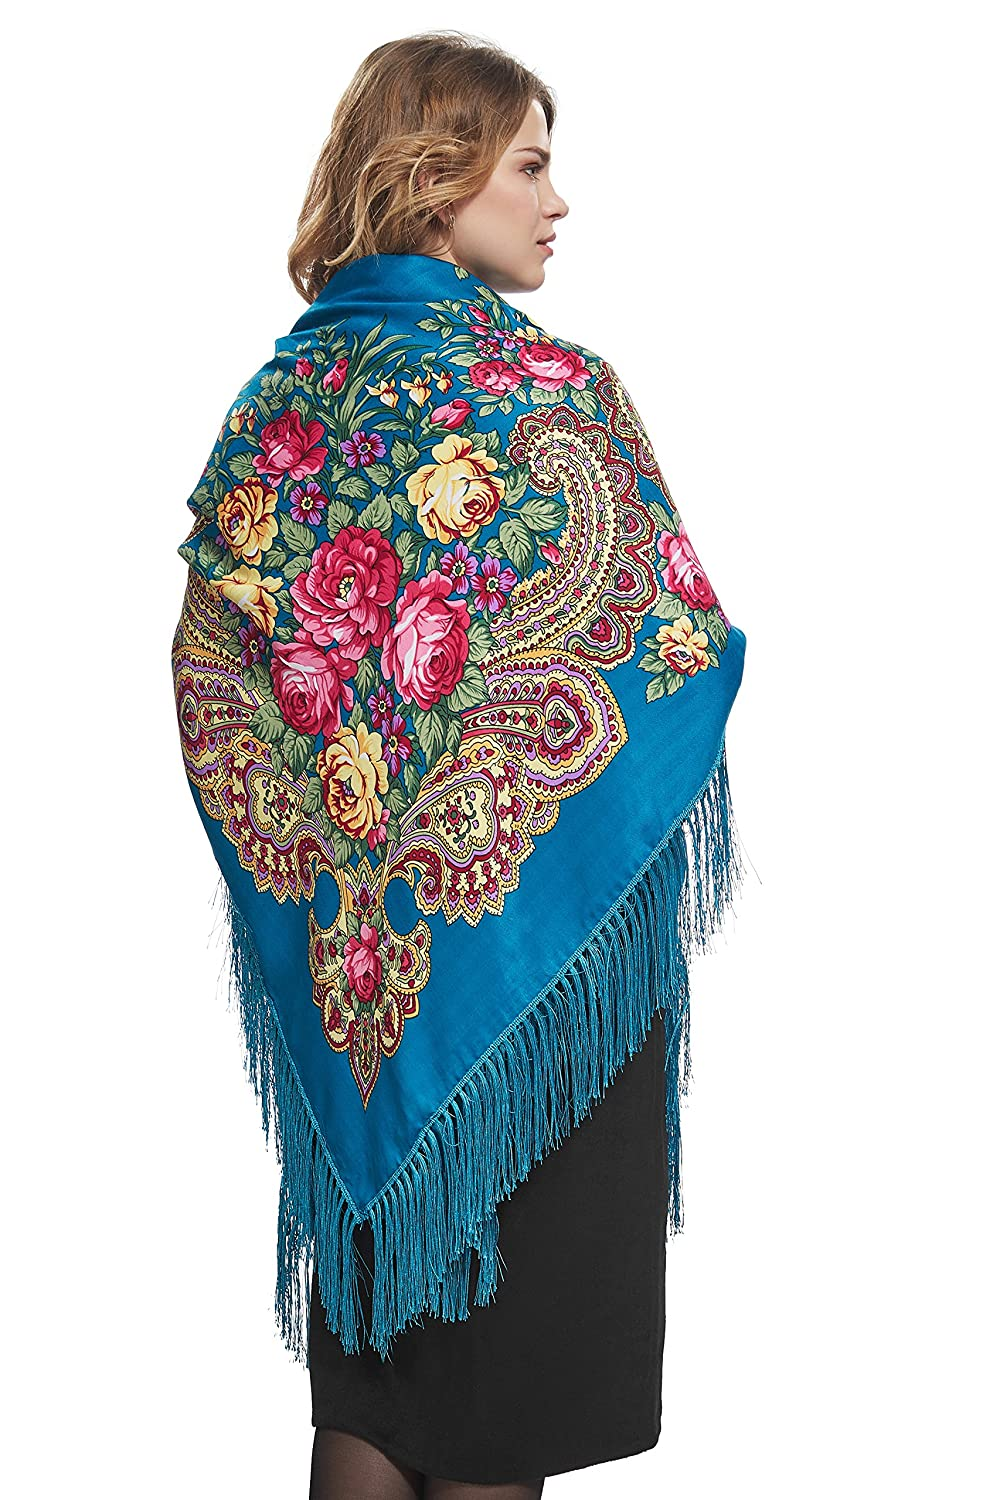 Shawls & Wraps | Vintage Lace & Fur Evening Scarves Ladies Oversized Floral Shawl With Tassels Ukrainian Polish Russian Wrap 51 x 51